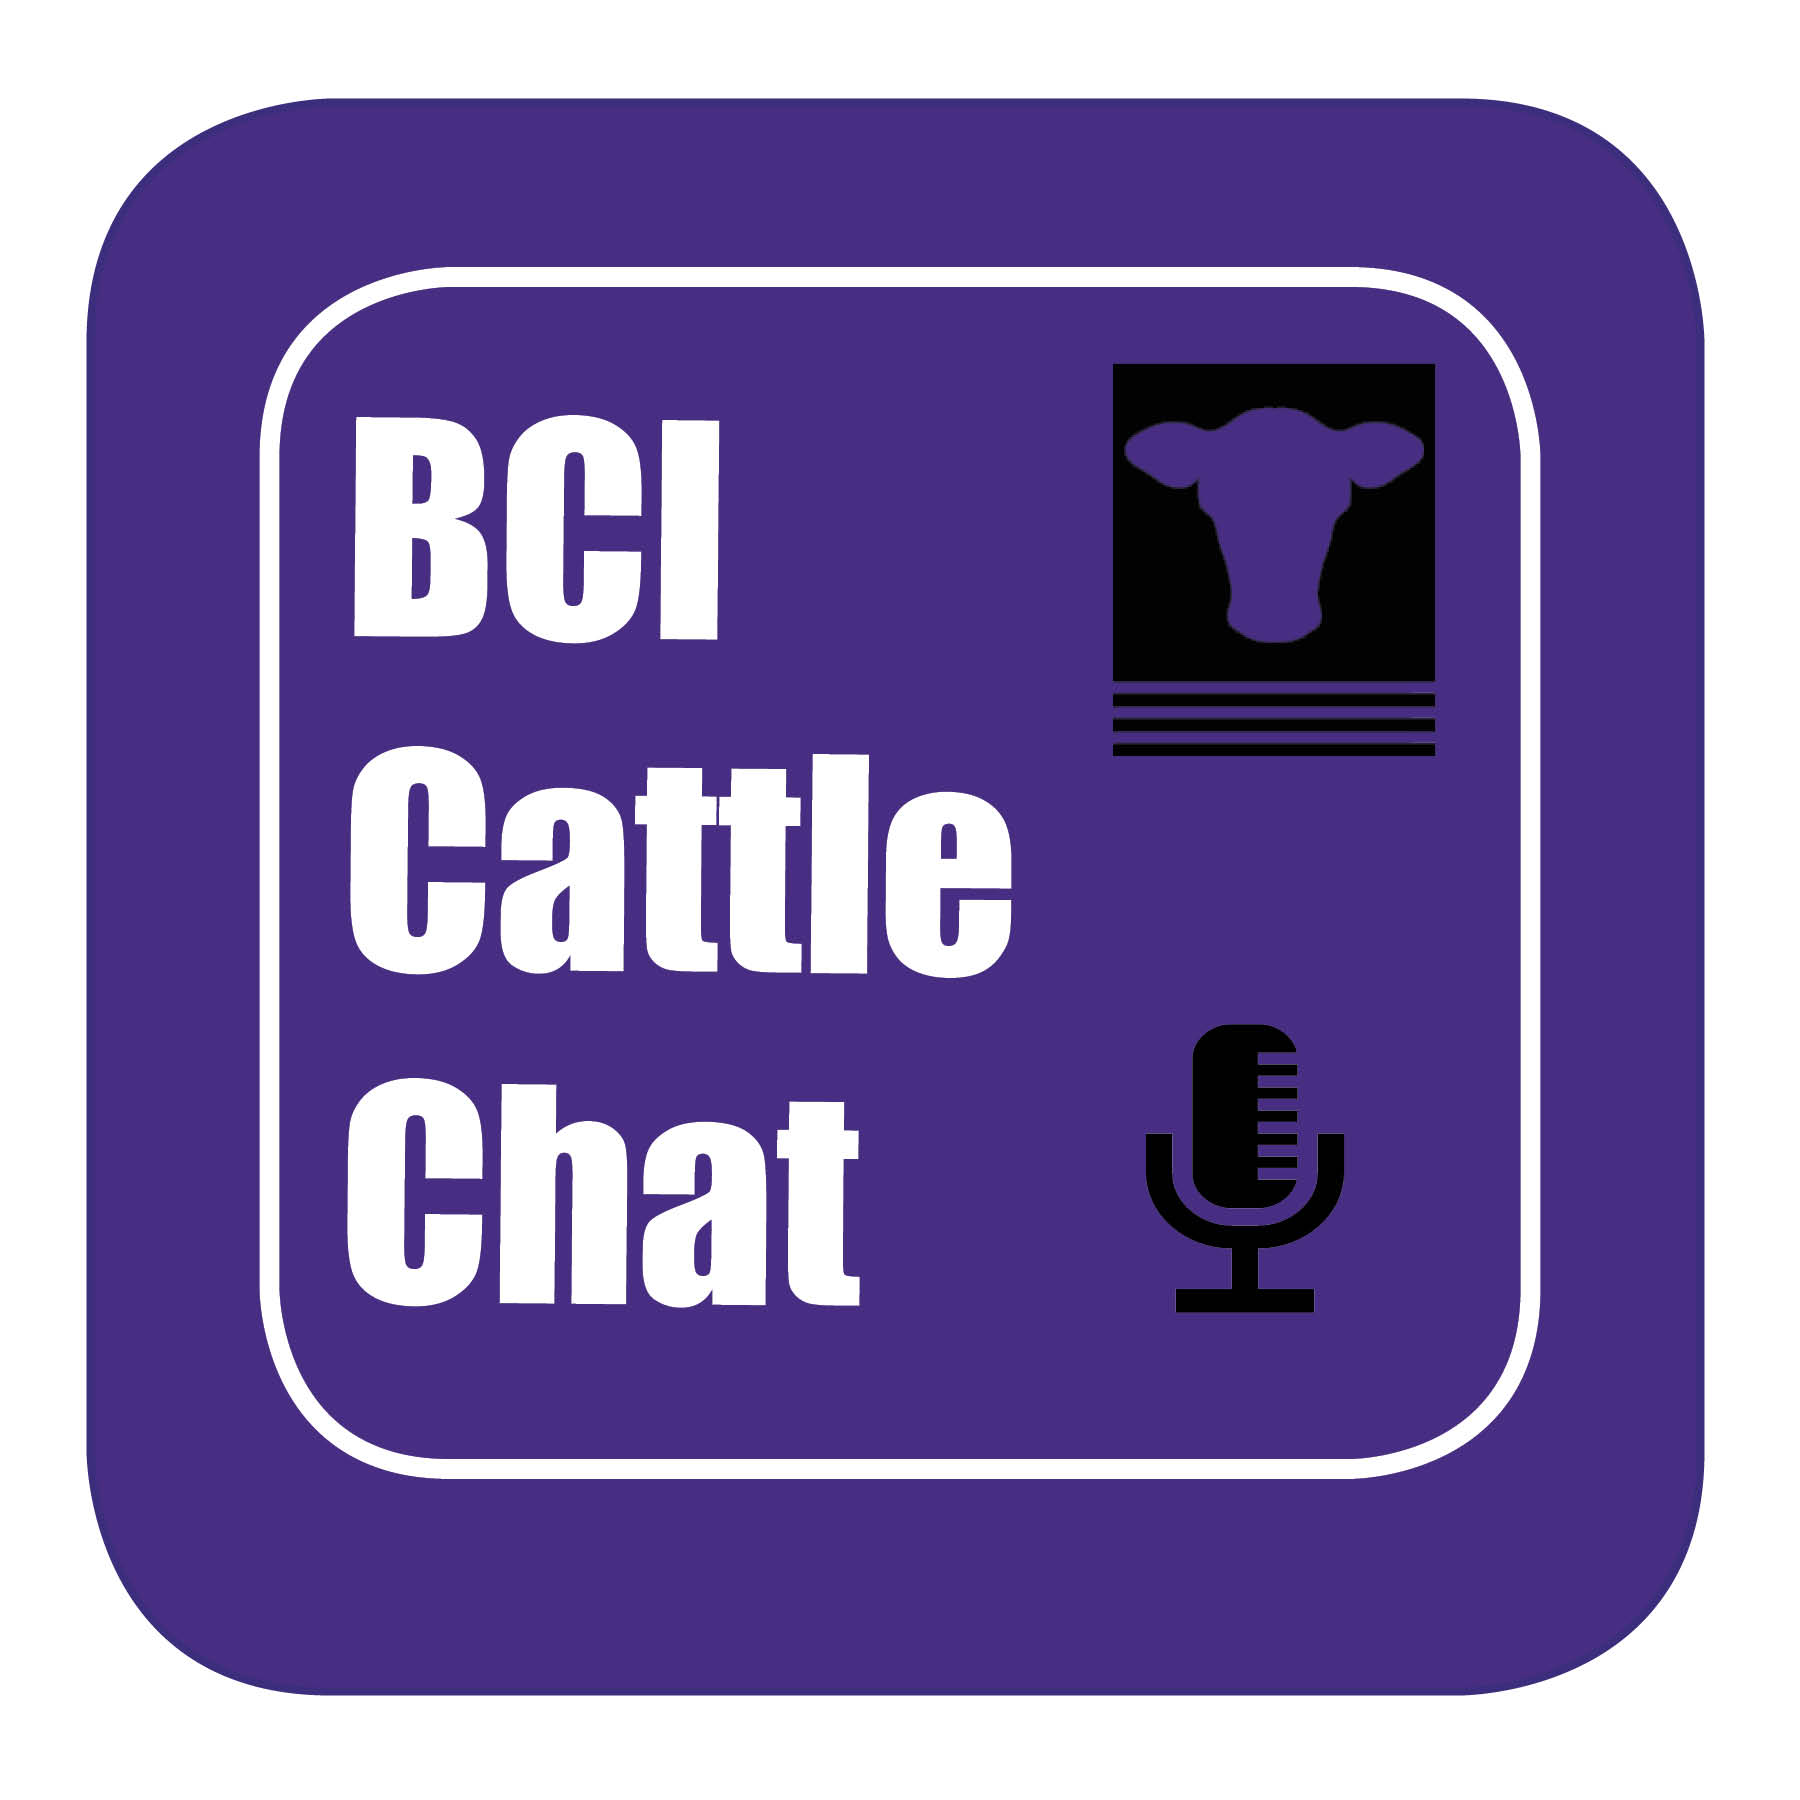 BCI Cattle Chat - Episode 1